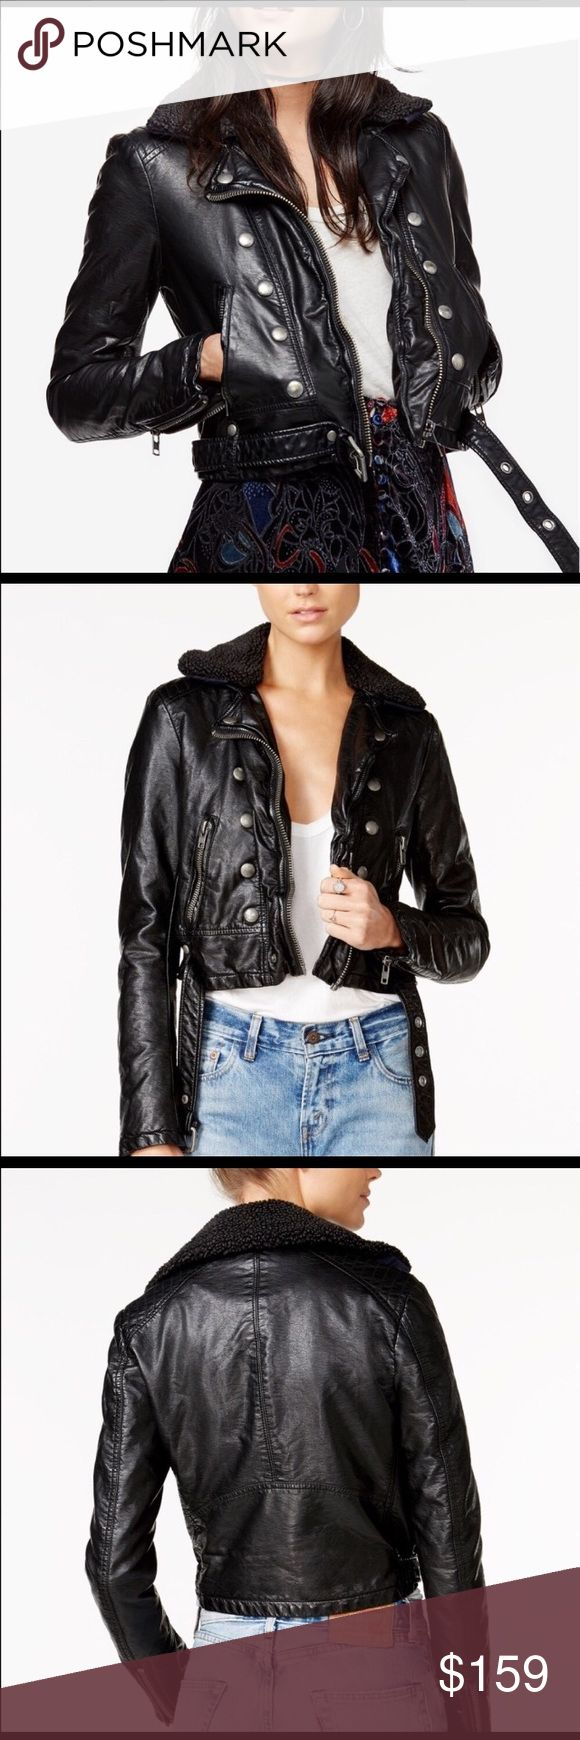 Free People Faux leather jacket size L new w tag Free People Faux leather jacket size L new w tag Size L . It fits like size 8-10 regular. Soft faux leather upper . Inside warm quilted lining . Very  cool jacket. Fur collar is removable. Lining is blue color . Sleeves are lined too Free People Jackets & Coats